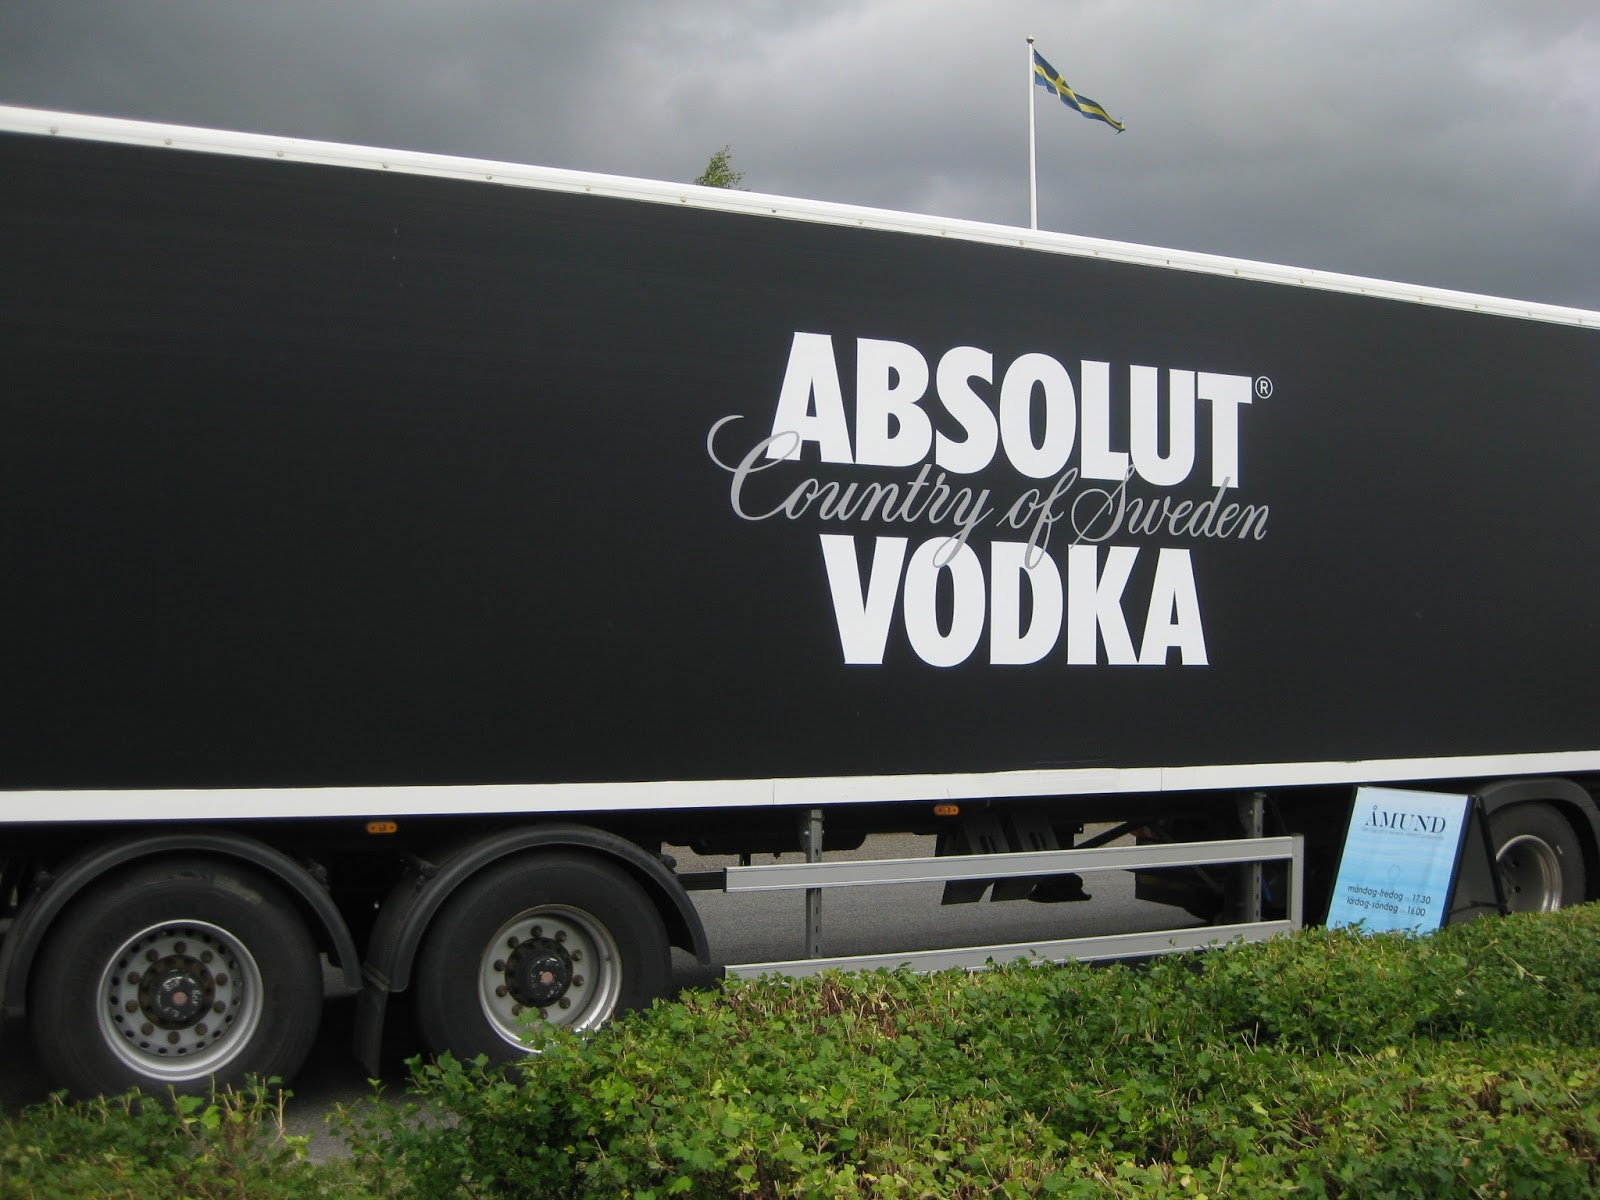 image of Absolute Vodka Truck